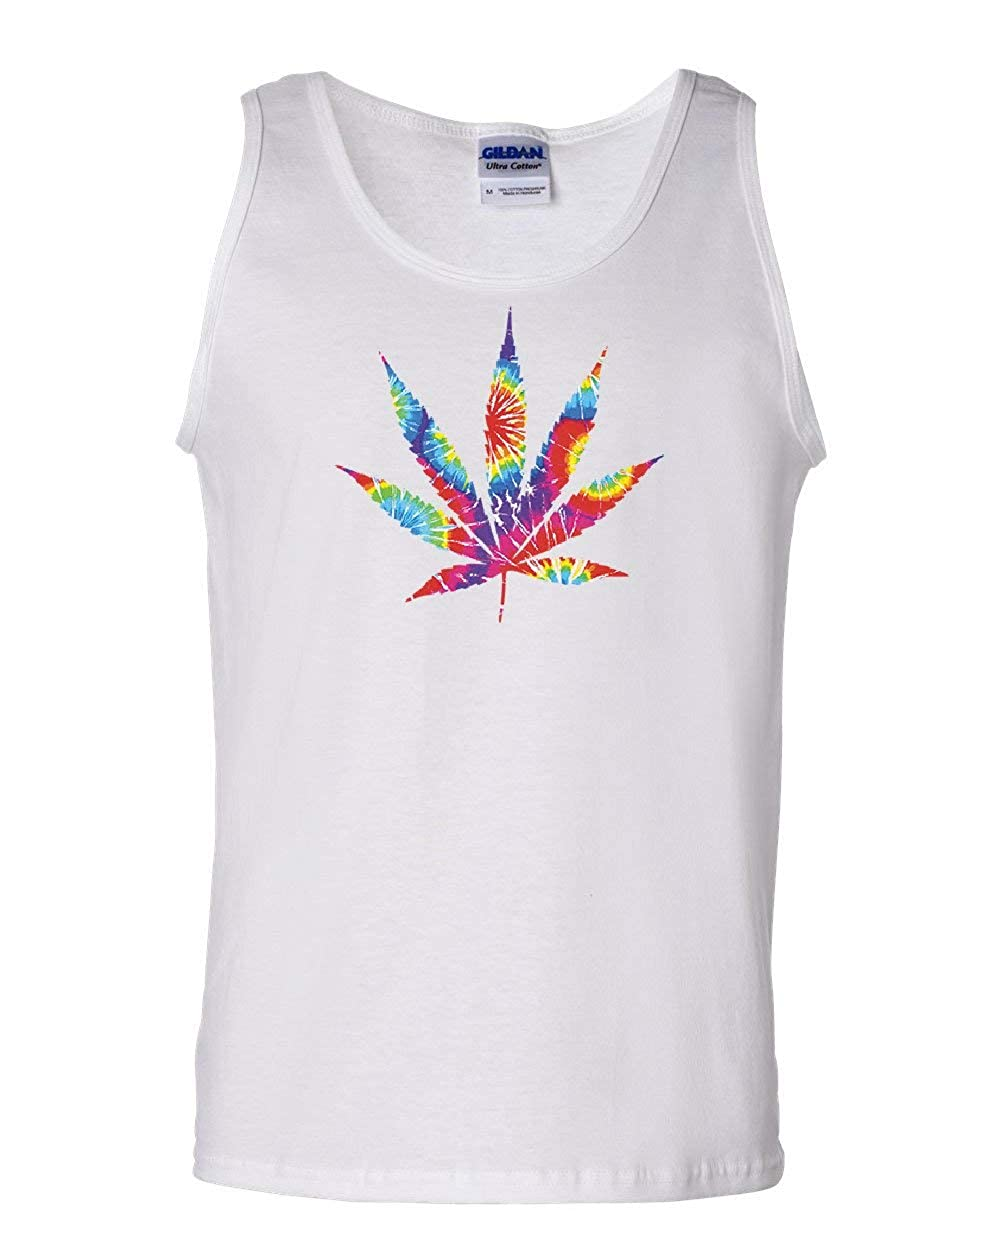 Tie Dye Pot Leaf Tank Top Smoking 420 Weed Cannabis Marijuana Sleeveless